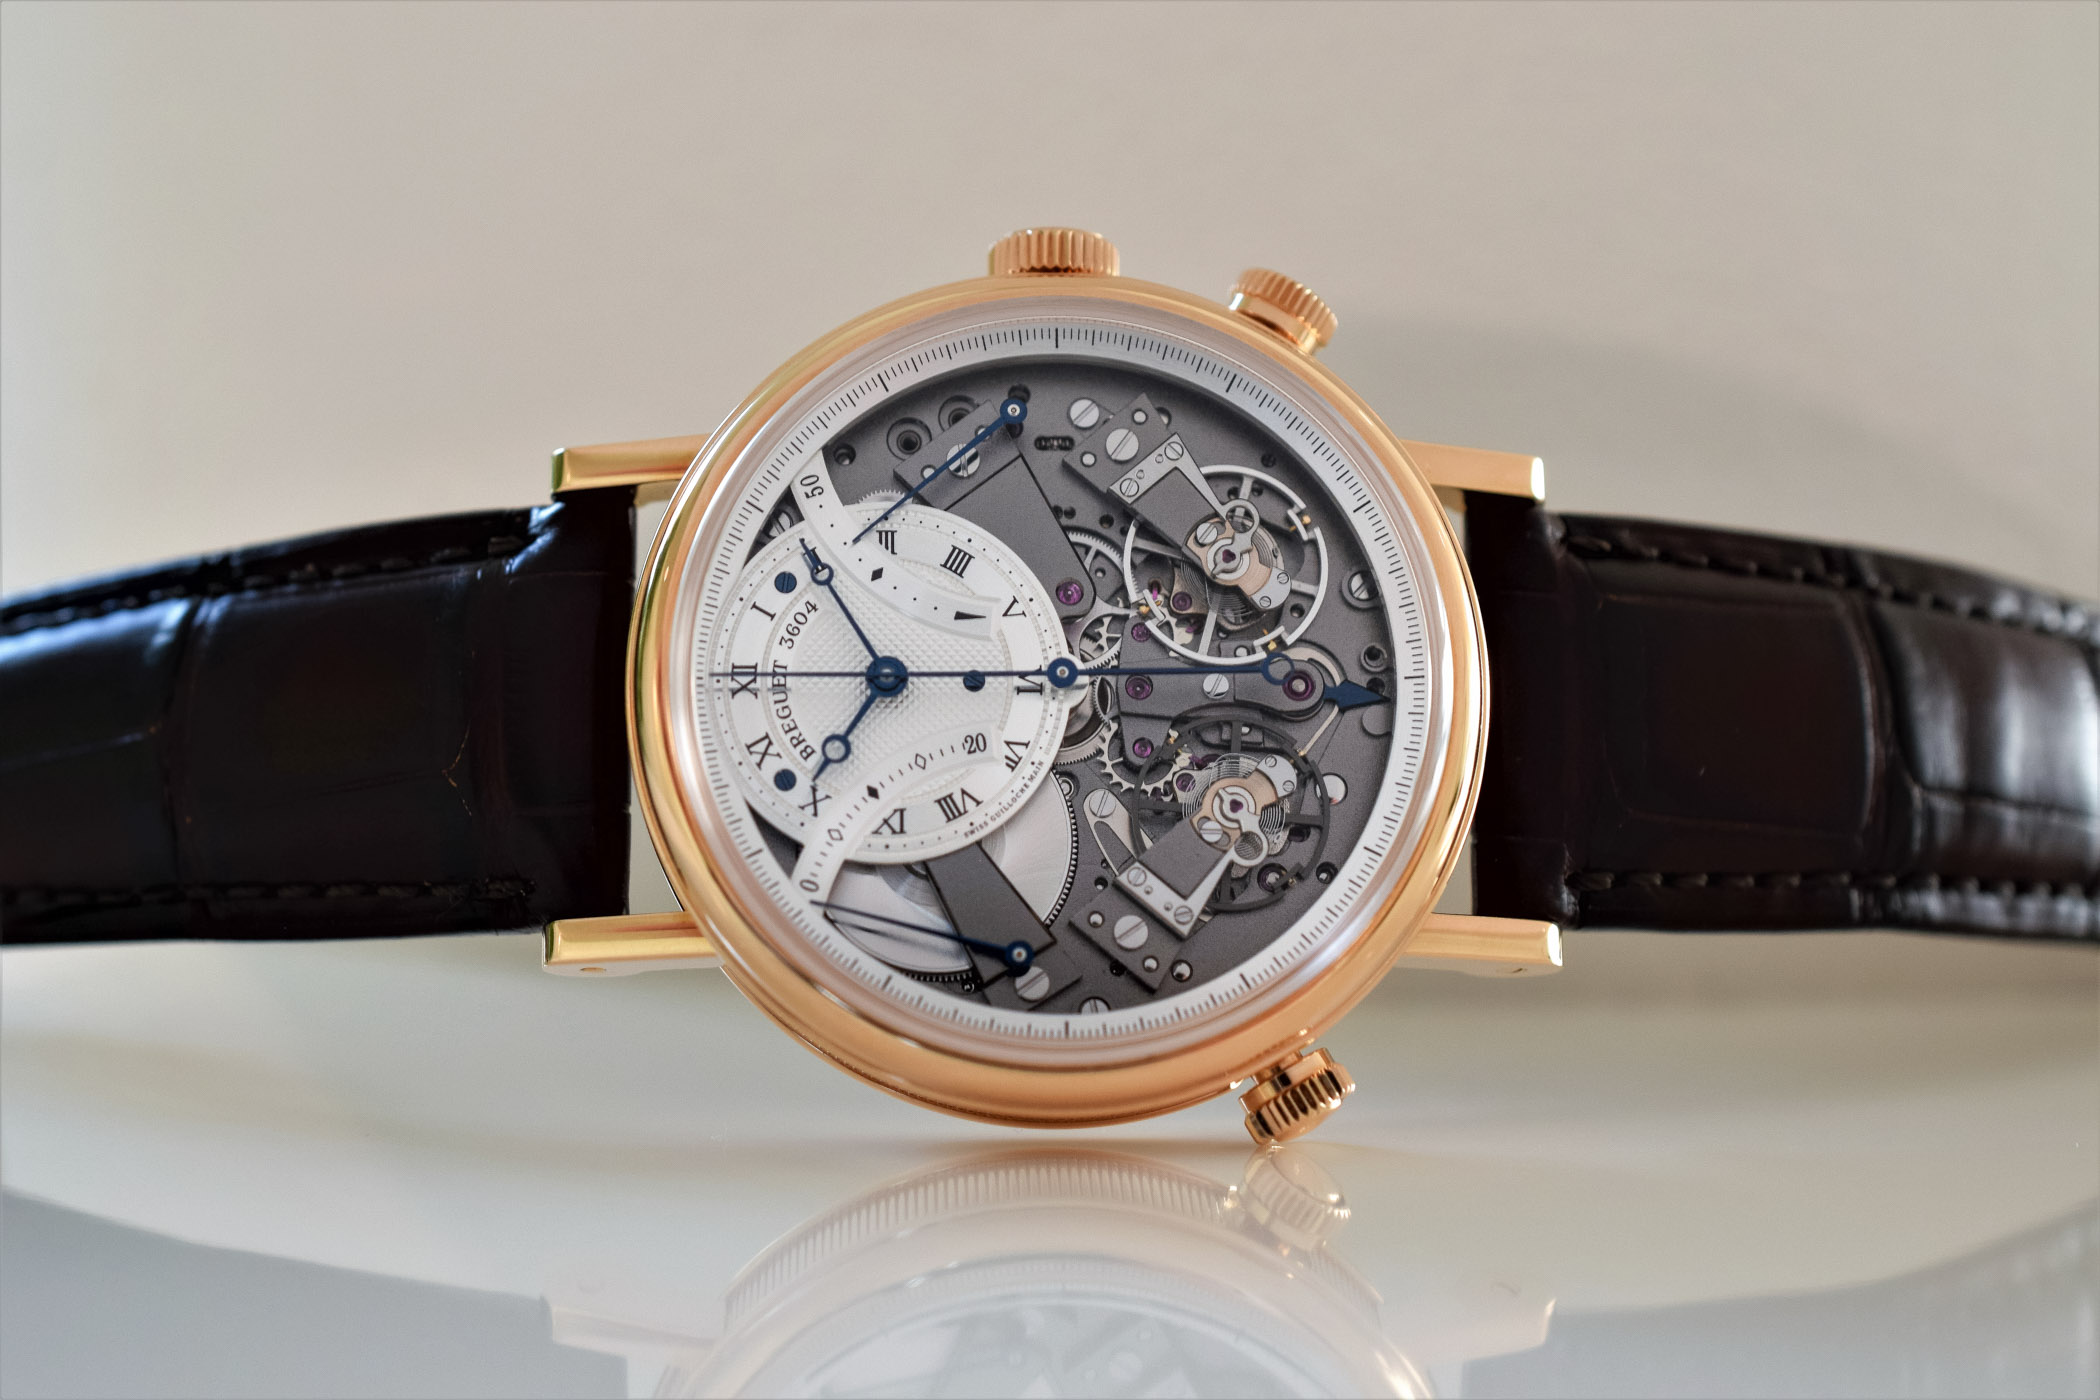 Breguet Tradition Chronograph Independent 7077 - 6